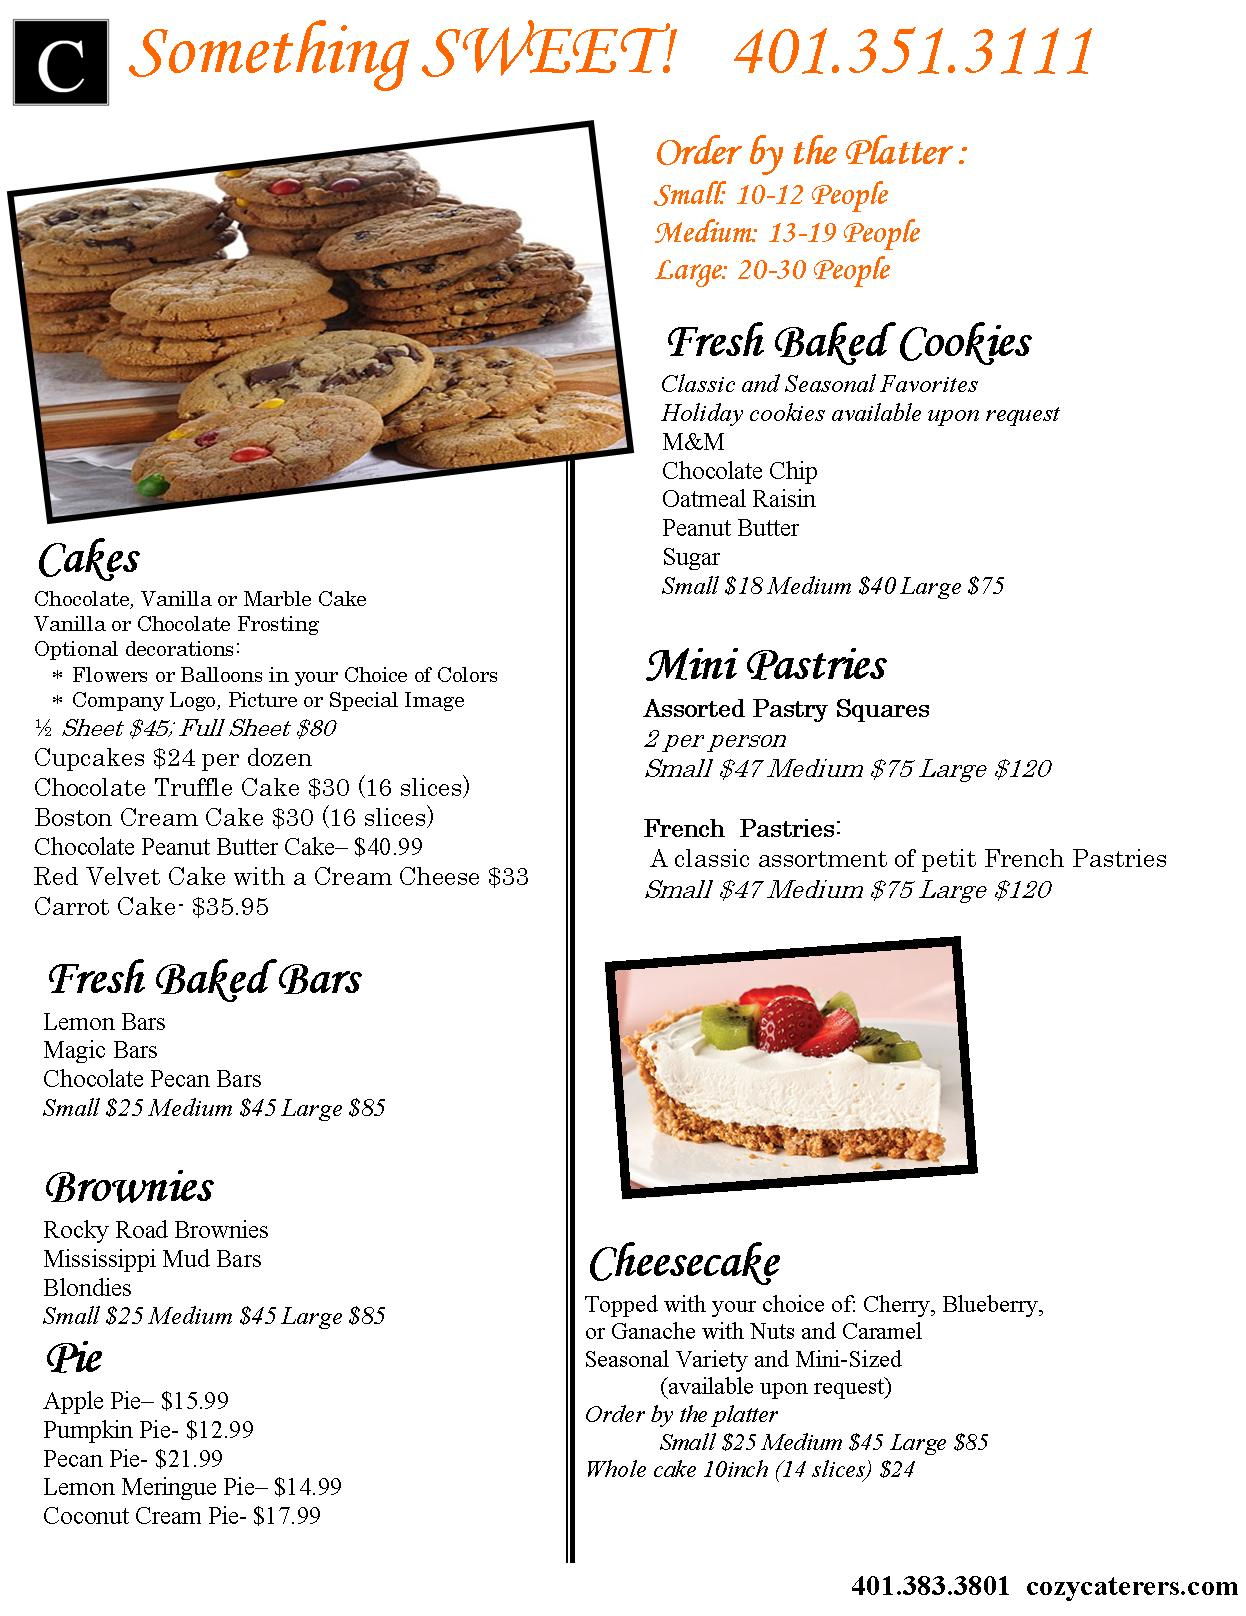 Page 14 - Cozy Caterers Page on